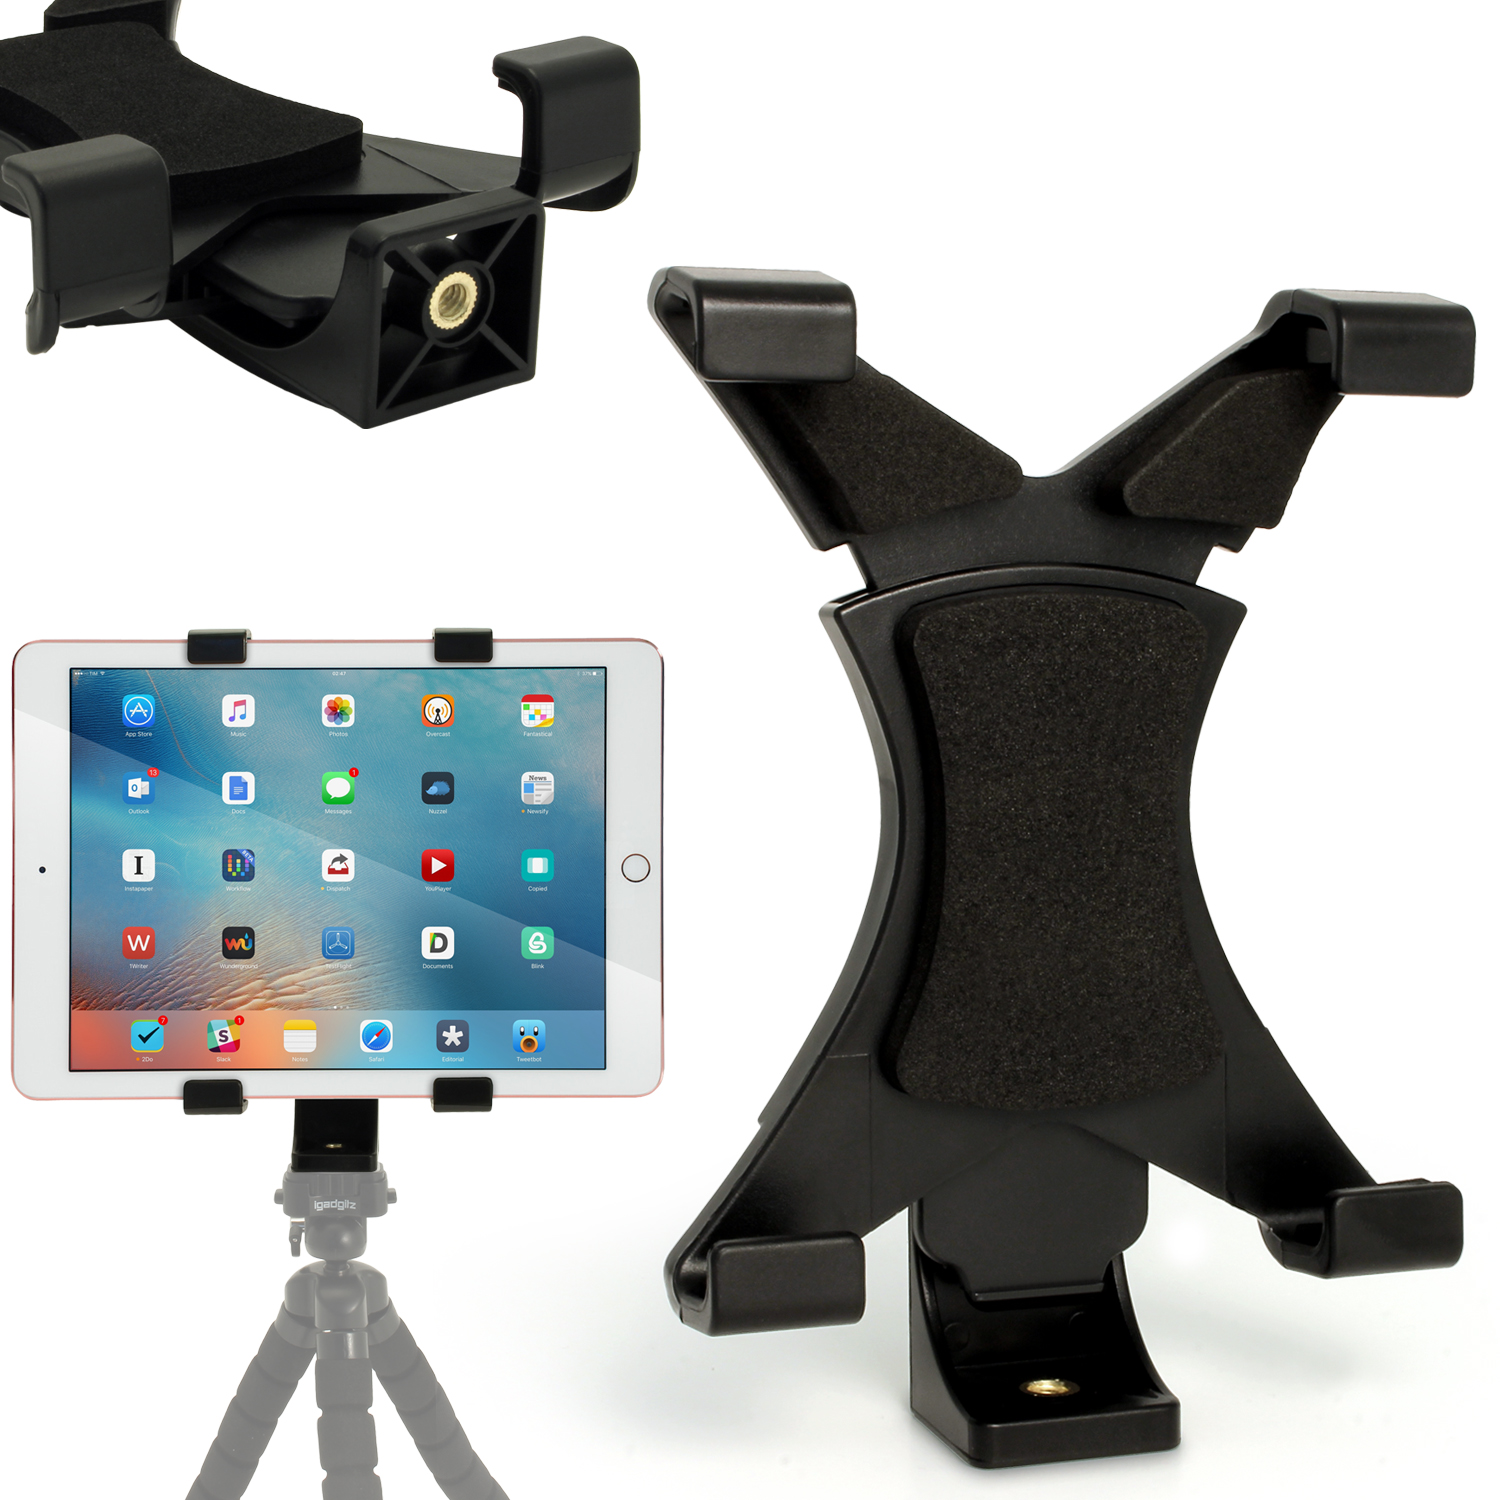 "iGadgitz Universal Tablet Holder Mount Bracket for Tripods with 1/4 Inch Screw Thread ? Fits tablets 7"" - 10"" Tablets"